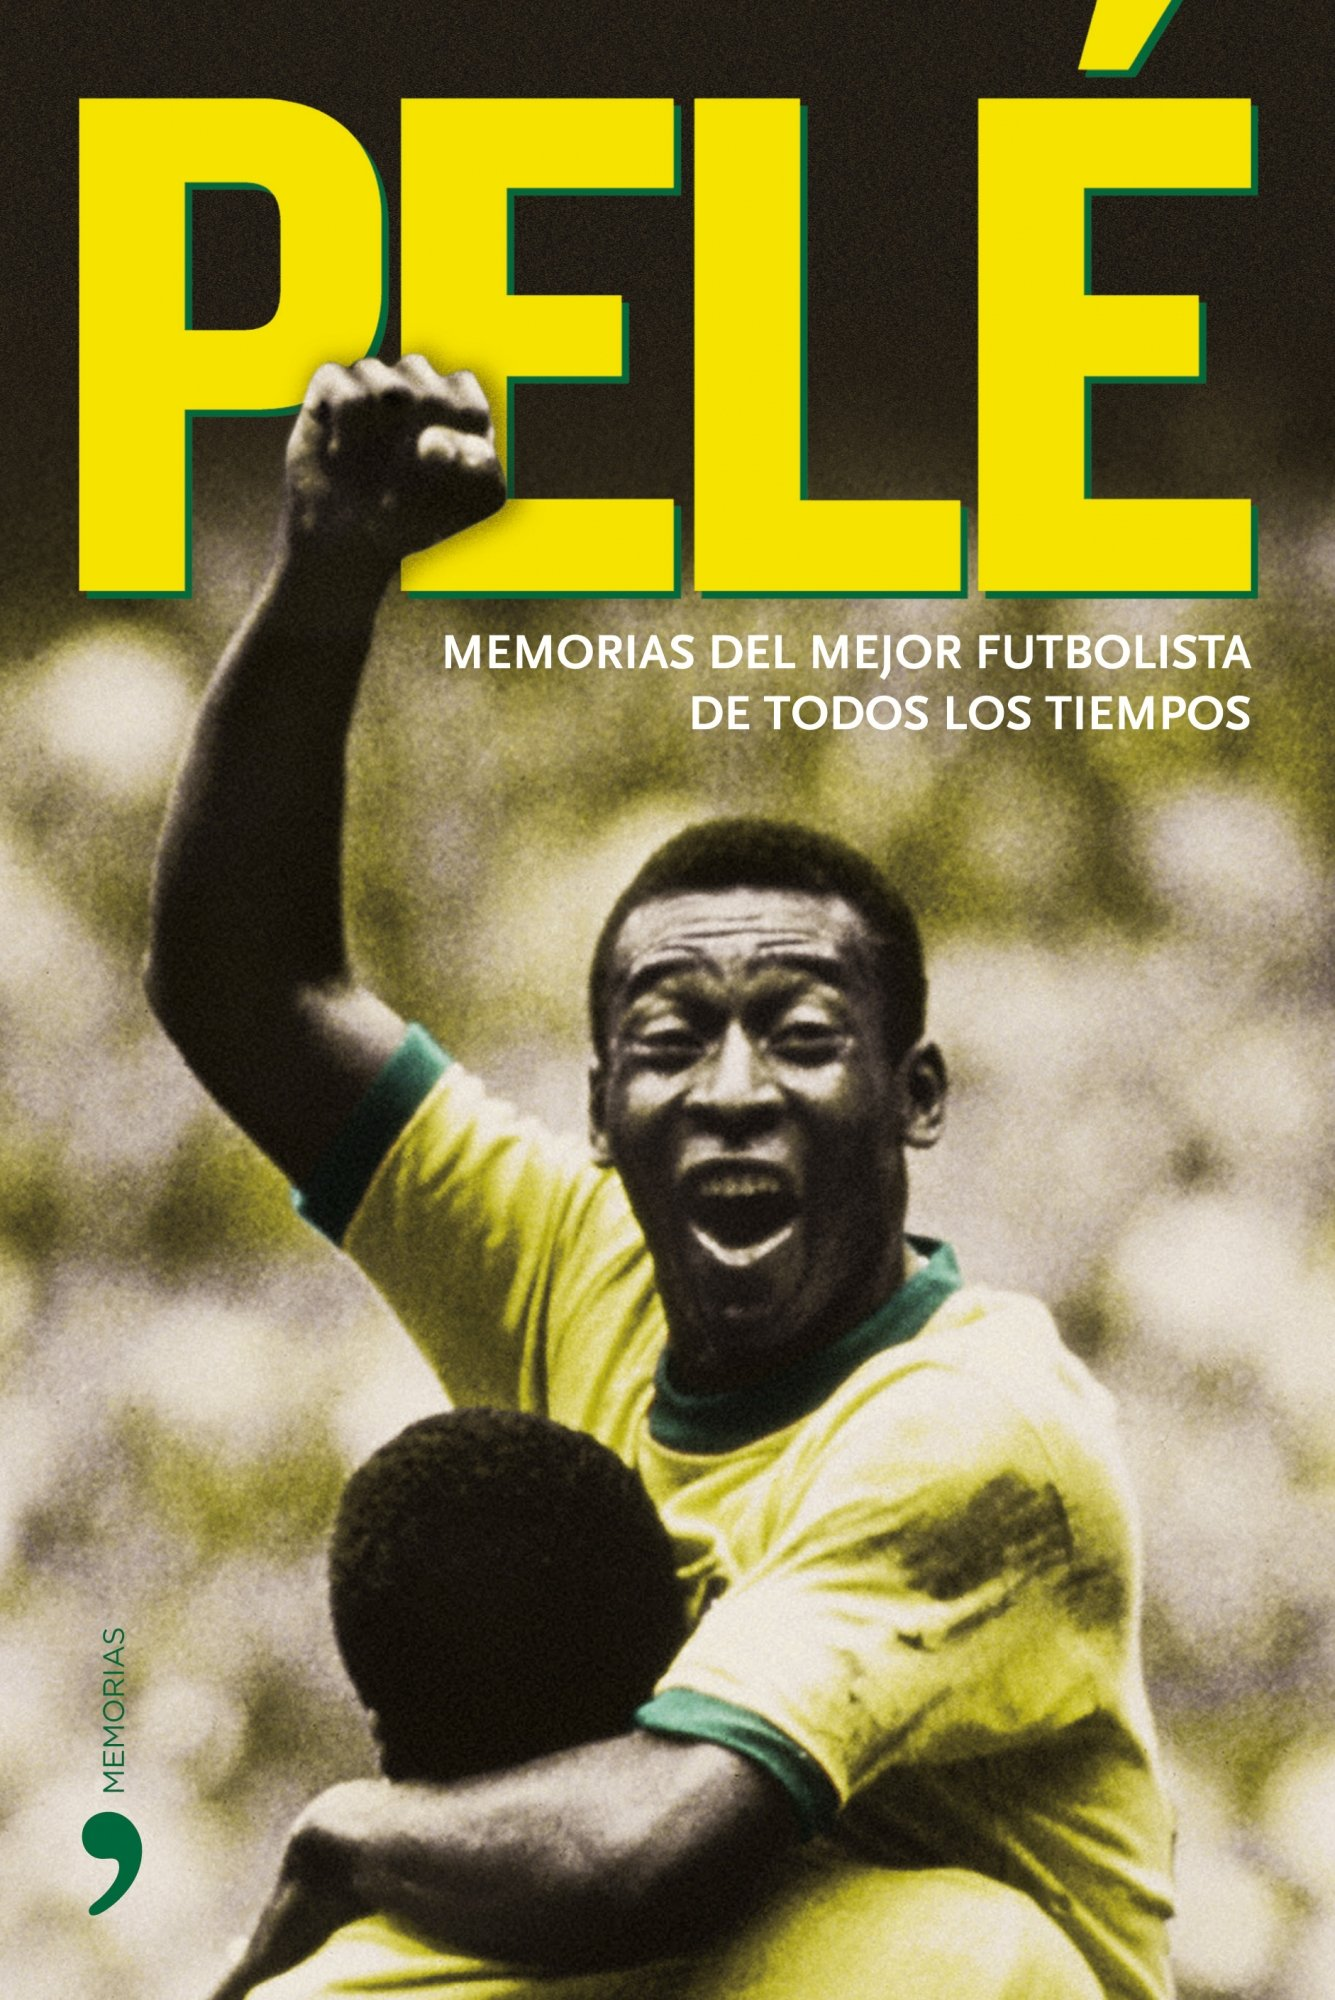 Pele: Memorias del mejor futbolista de todos los tiempos/ Memories of the Best Soccer Player of All Times (Spanish Edition) by Temas De Hoy